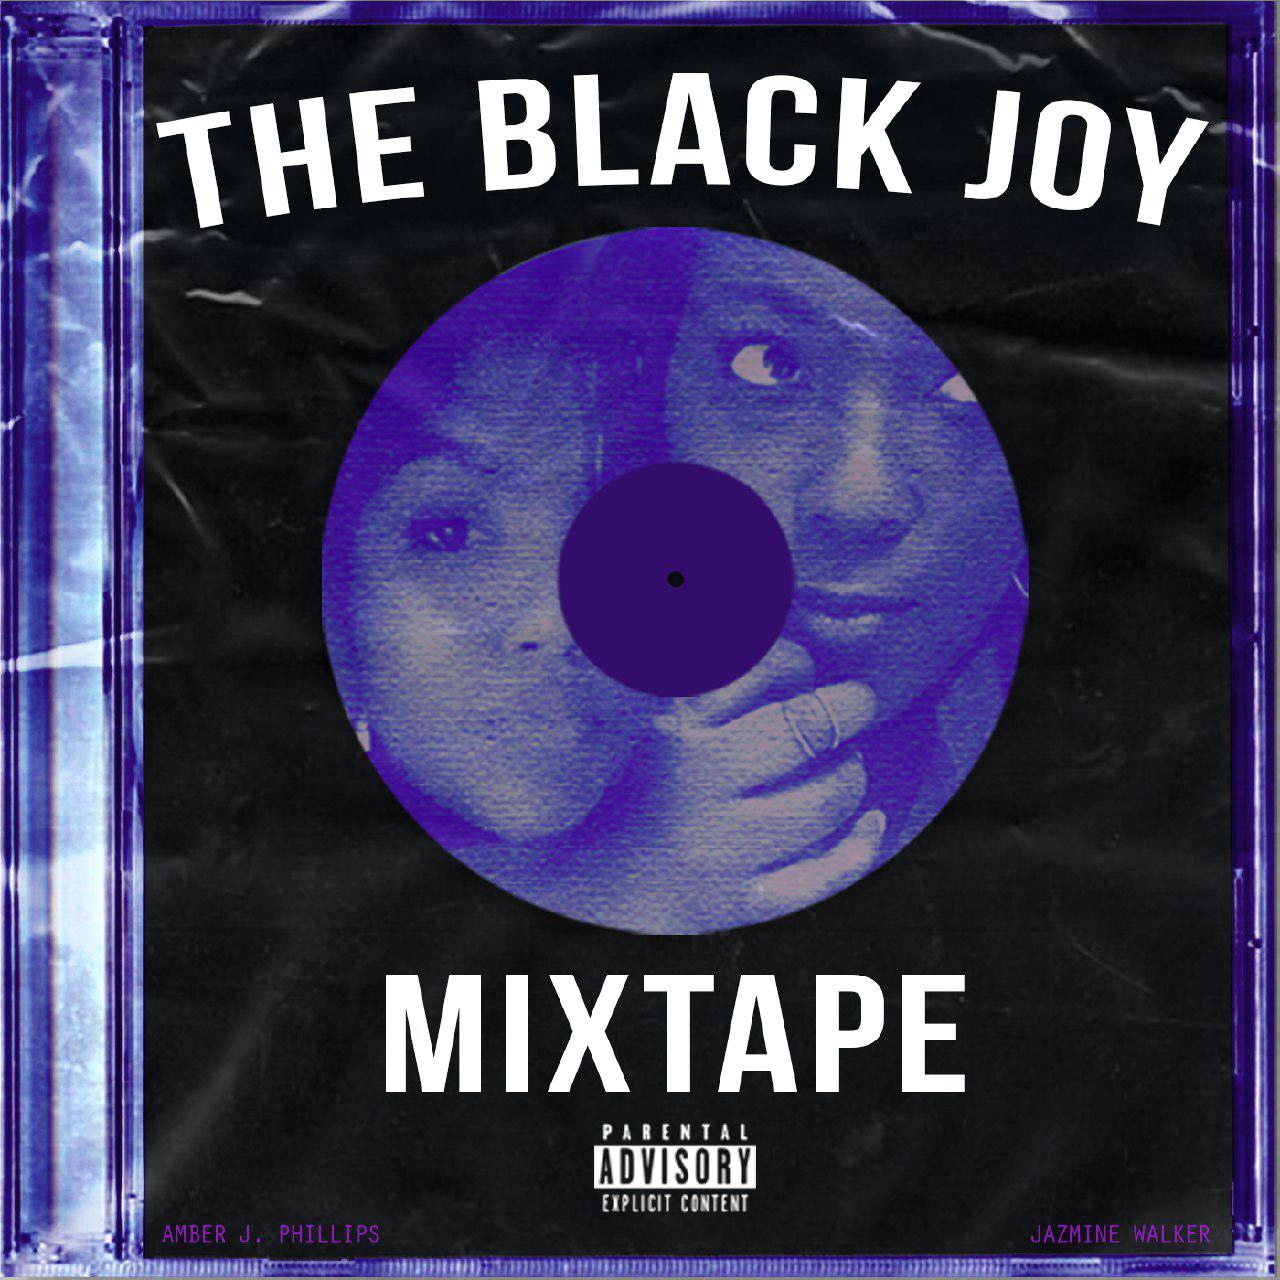 """The Black Joy Mixtape Podcast - The Black Joy Mixtape, hosted by Amber J. Phillips, the High Priestess of Black Joy and Jazmine """"Da K.O.S."""" Walker, is a news and politics podcast that uses comedy and facts to break down the leading headlines in politics and pop culture. Every track remixes leading headlines with realness, comedy and Black Feminism, to make the news relatable to our daily lives and worthy of being pumped through our speakers. Covering everything from your favorite rapper, least favorite politician, trillest social movement, to some of the godliest Black women around, you don't want to miss this bi-weekly podcast!Since launching in October 2016, The Black Joy Mixtape has been featured on Teen Vogue, Saint Heron, Refinery29, ESSENCE, Feministing.com, The Root, and Bitch Media. To set the framework for the necessity of Black joy and the voices of Black women in news and politics, my co-host and I presented a TedxRVA talk entitled """"The Blueprint for the Black Joy Era"""".Soundcloud 